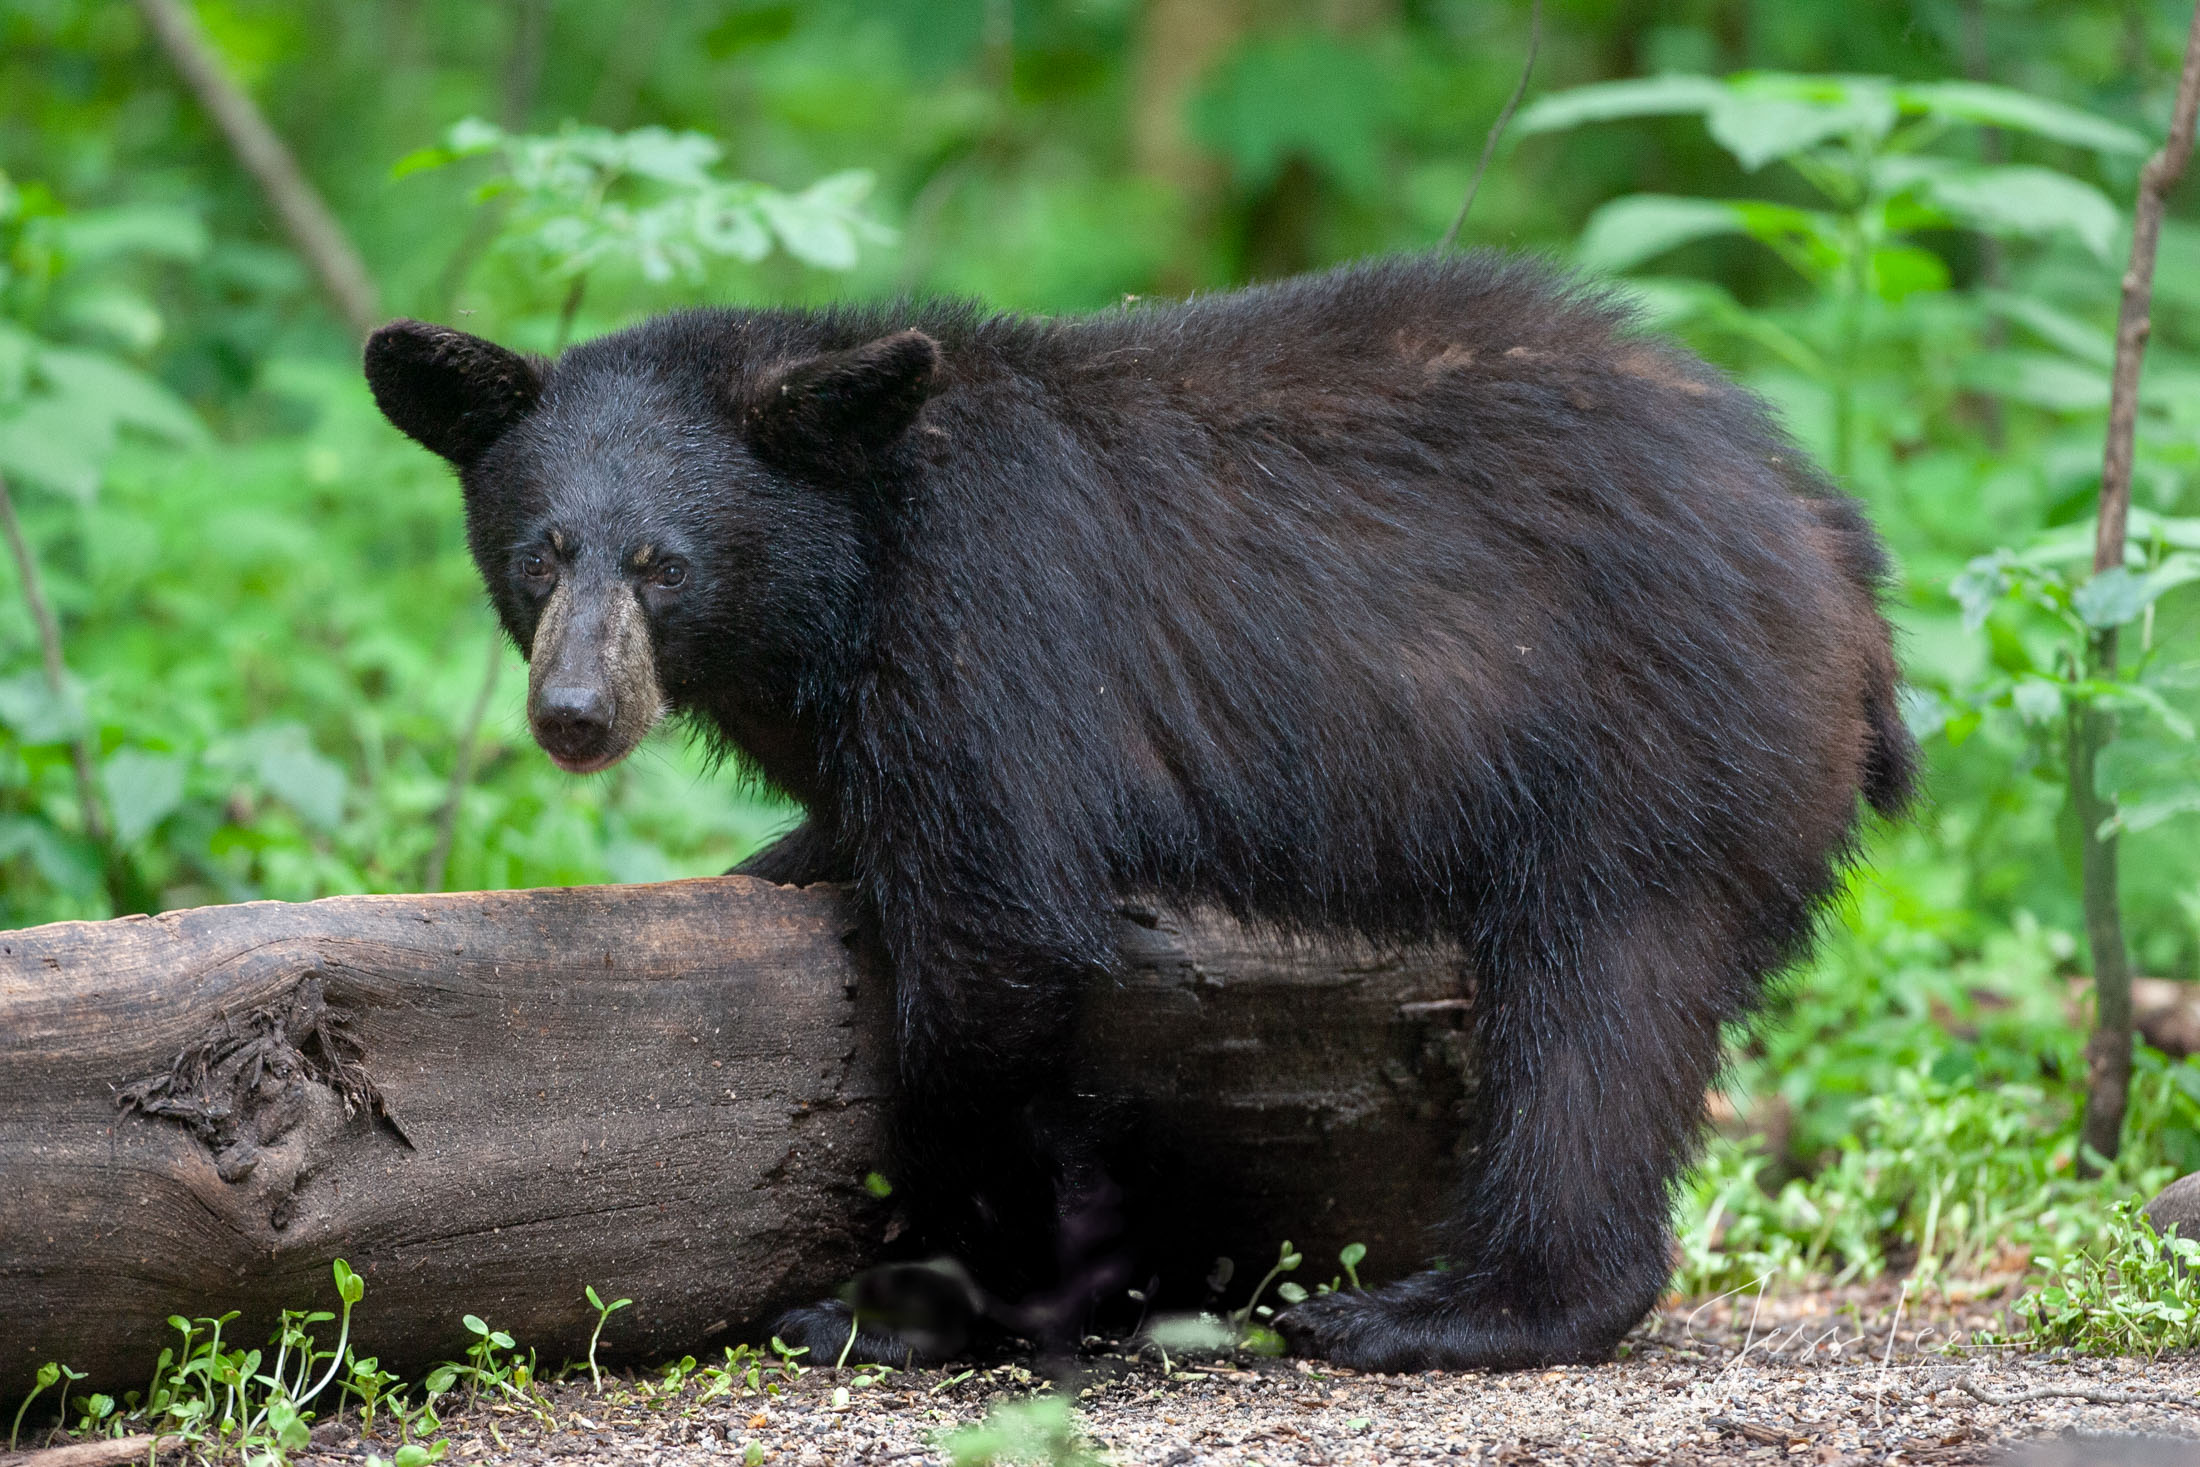 Black Bear, Fat Boy, Limited Edition of 100 prints. These bear photographs are offered as high-quality prints for sale as created...